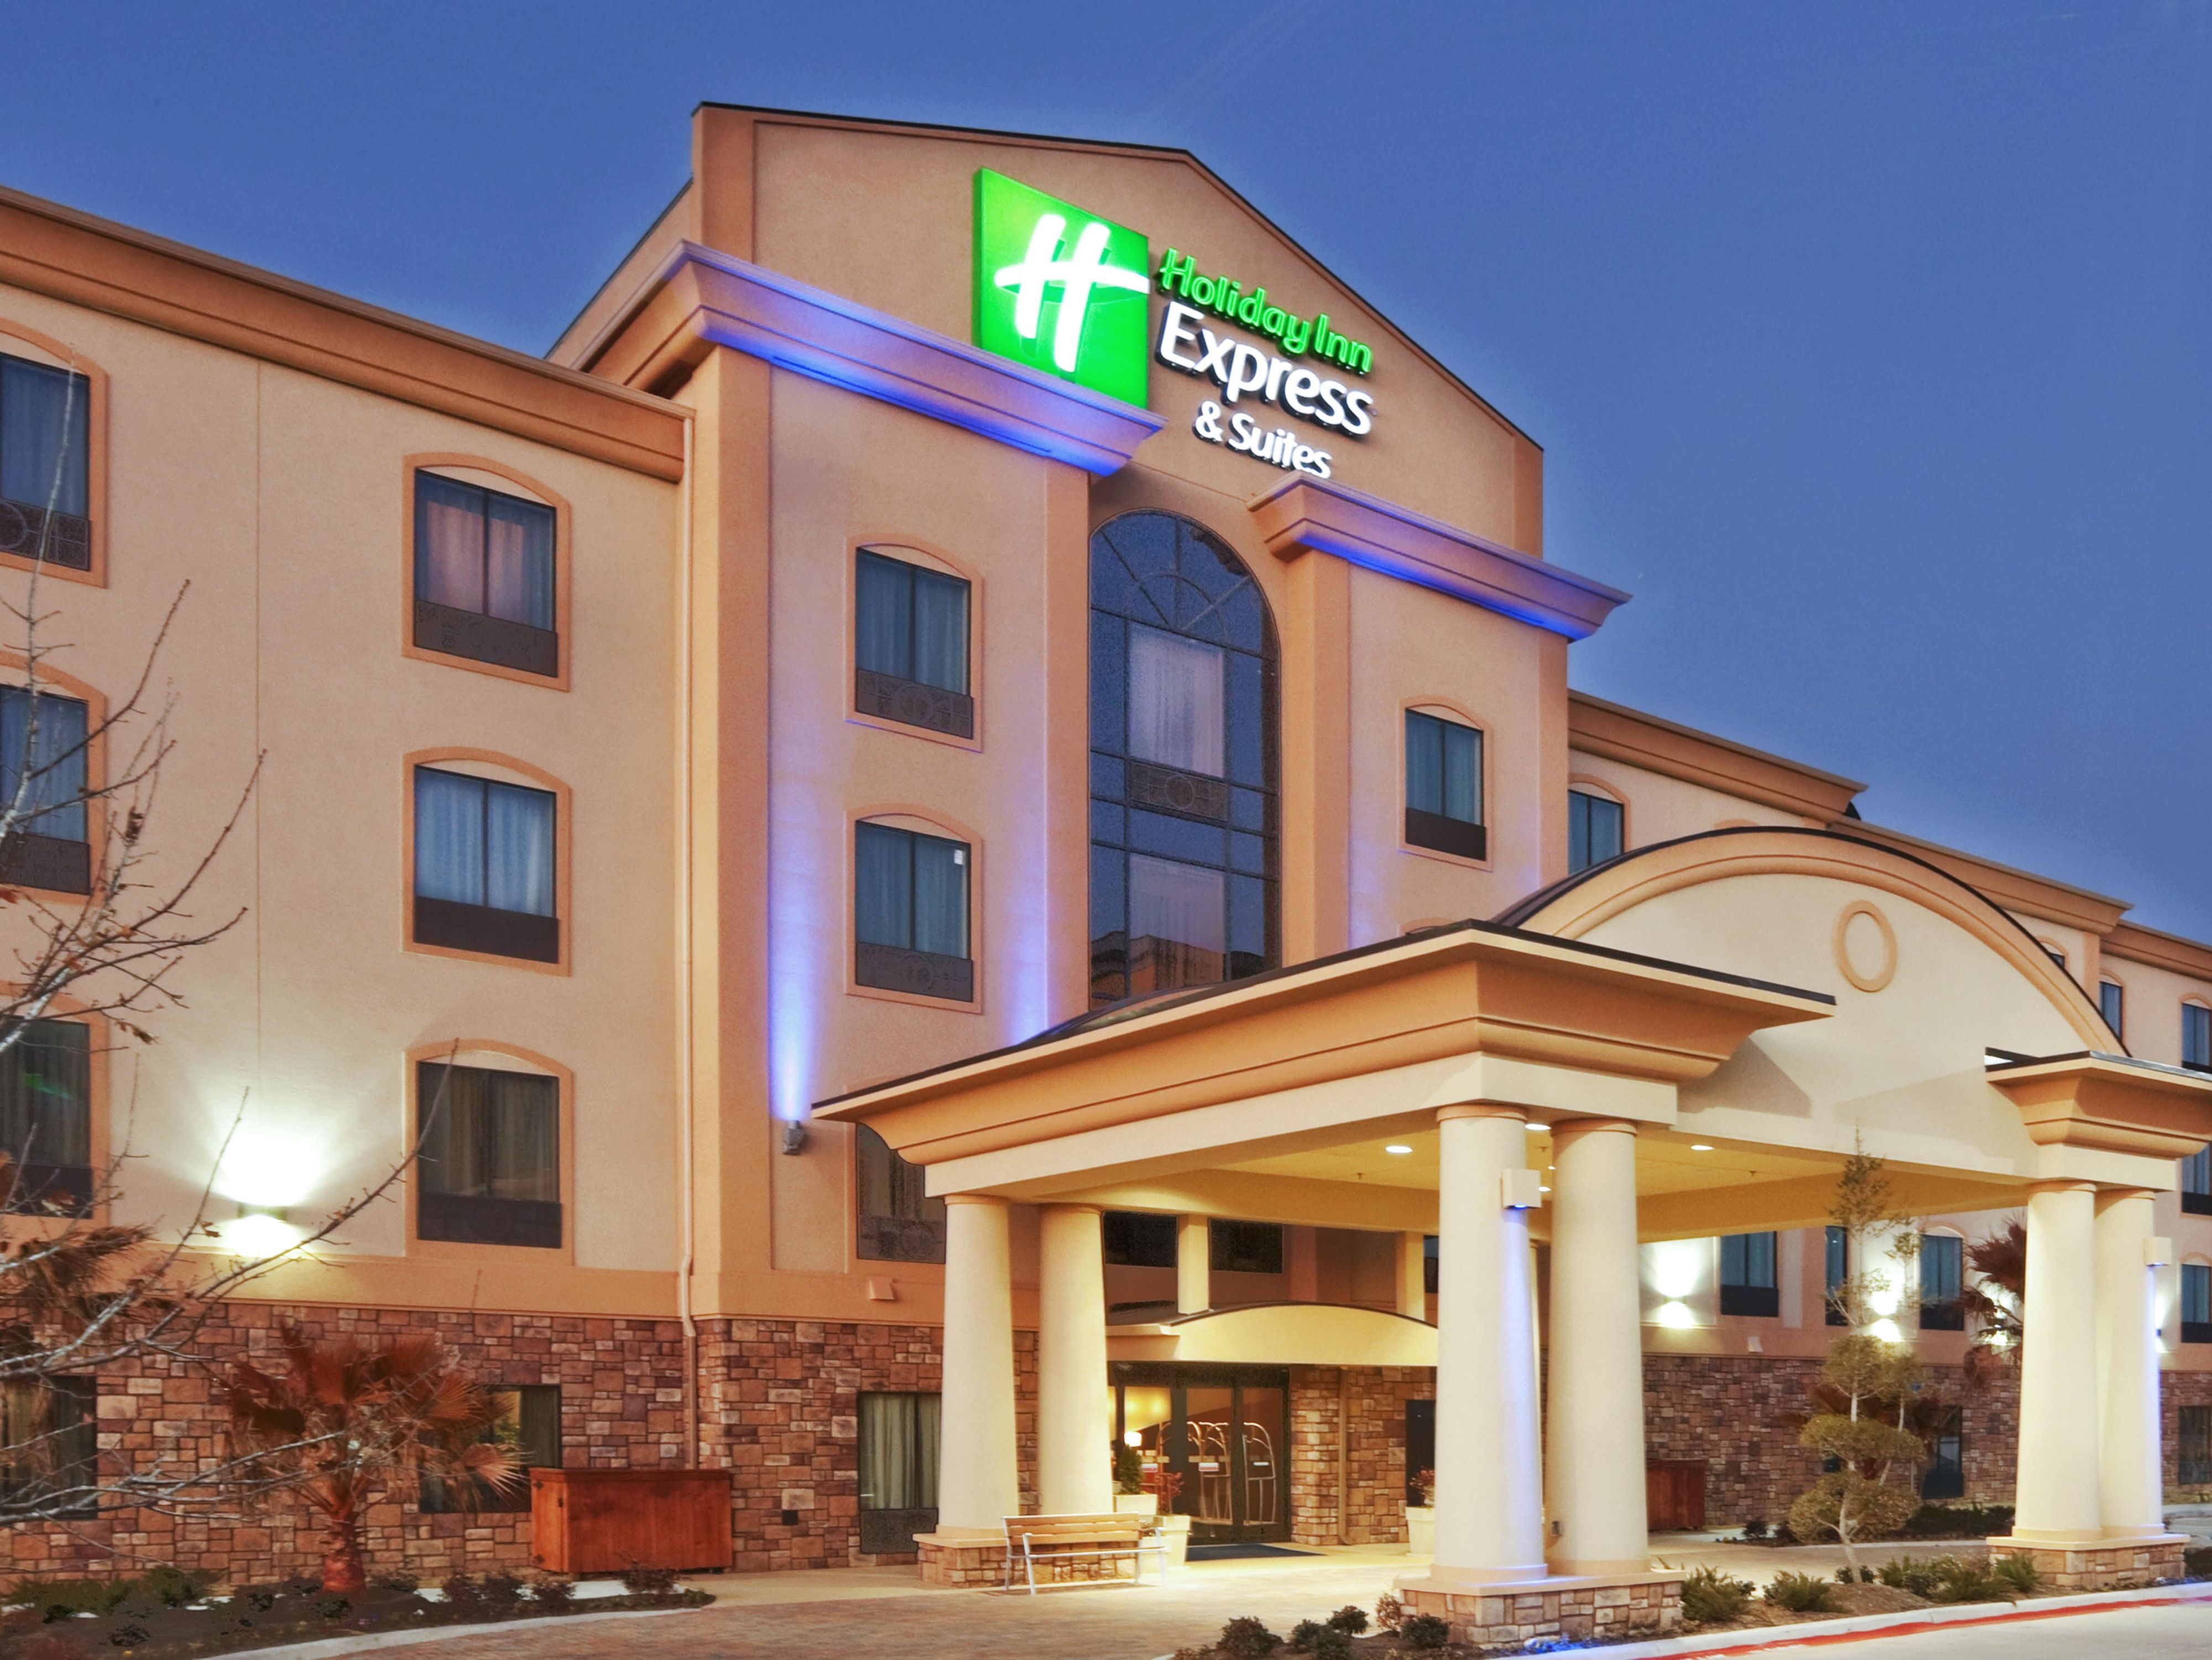 things to do in denton near holiday inn express suites denton unt twu hotel. Black Bedroom Furniture Sets. Home Design Ideas